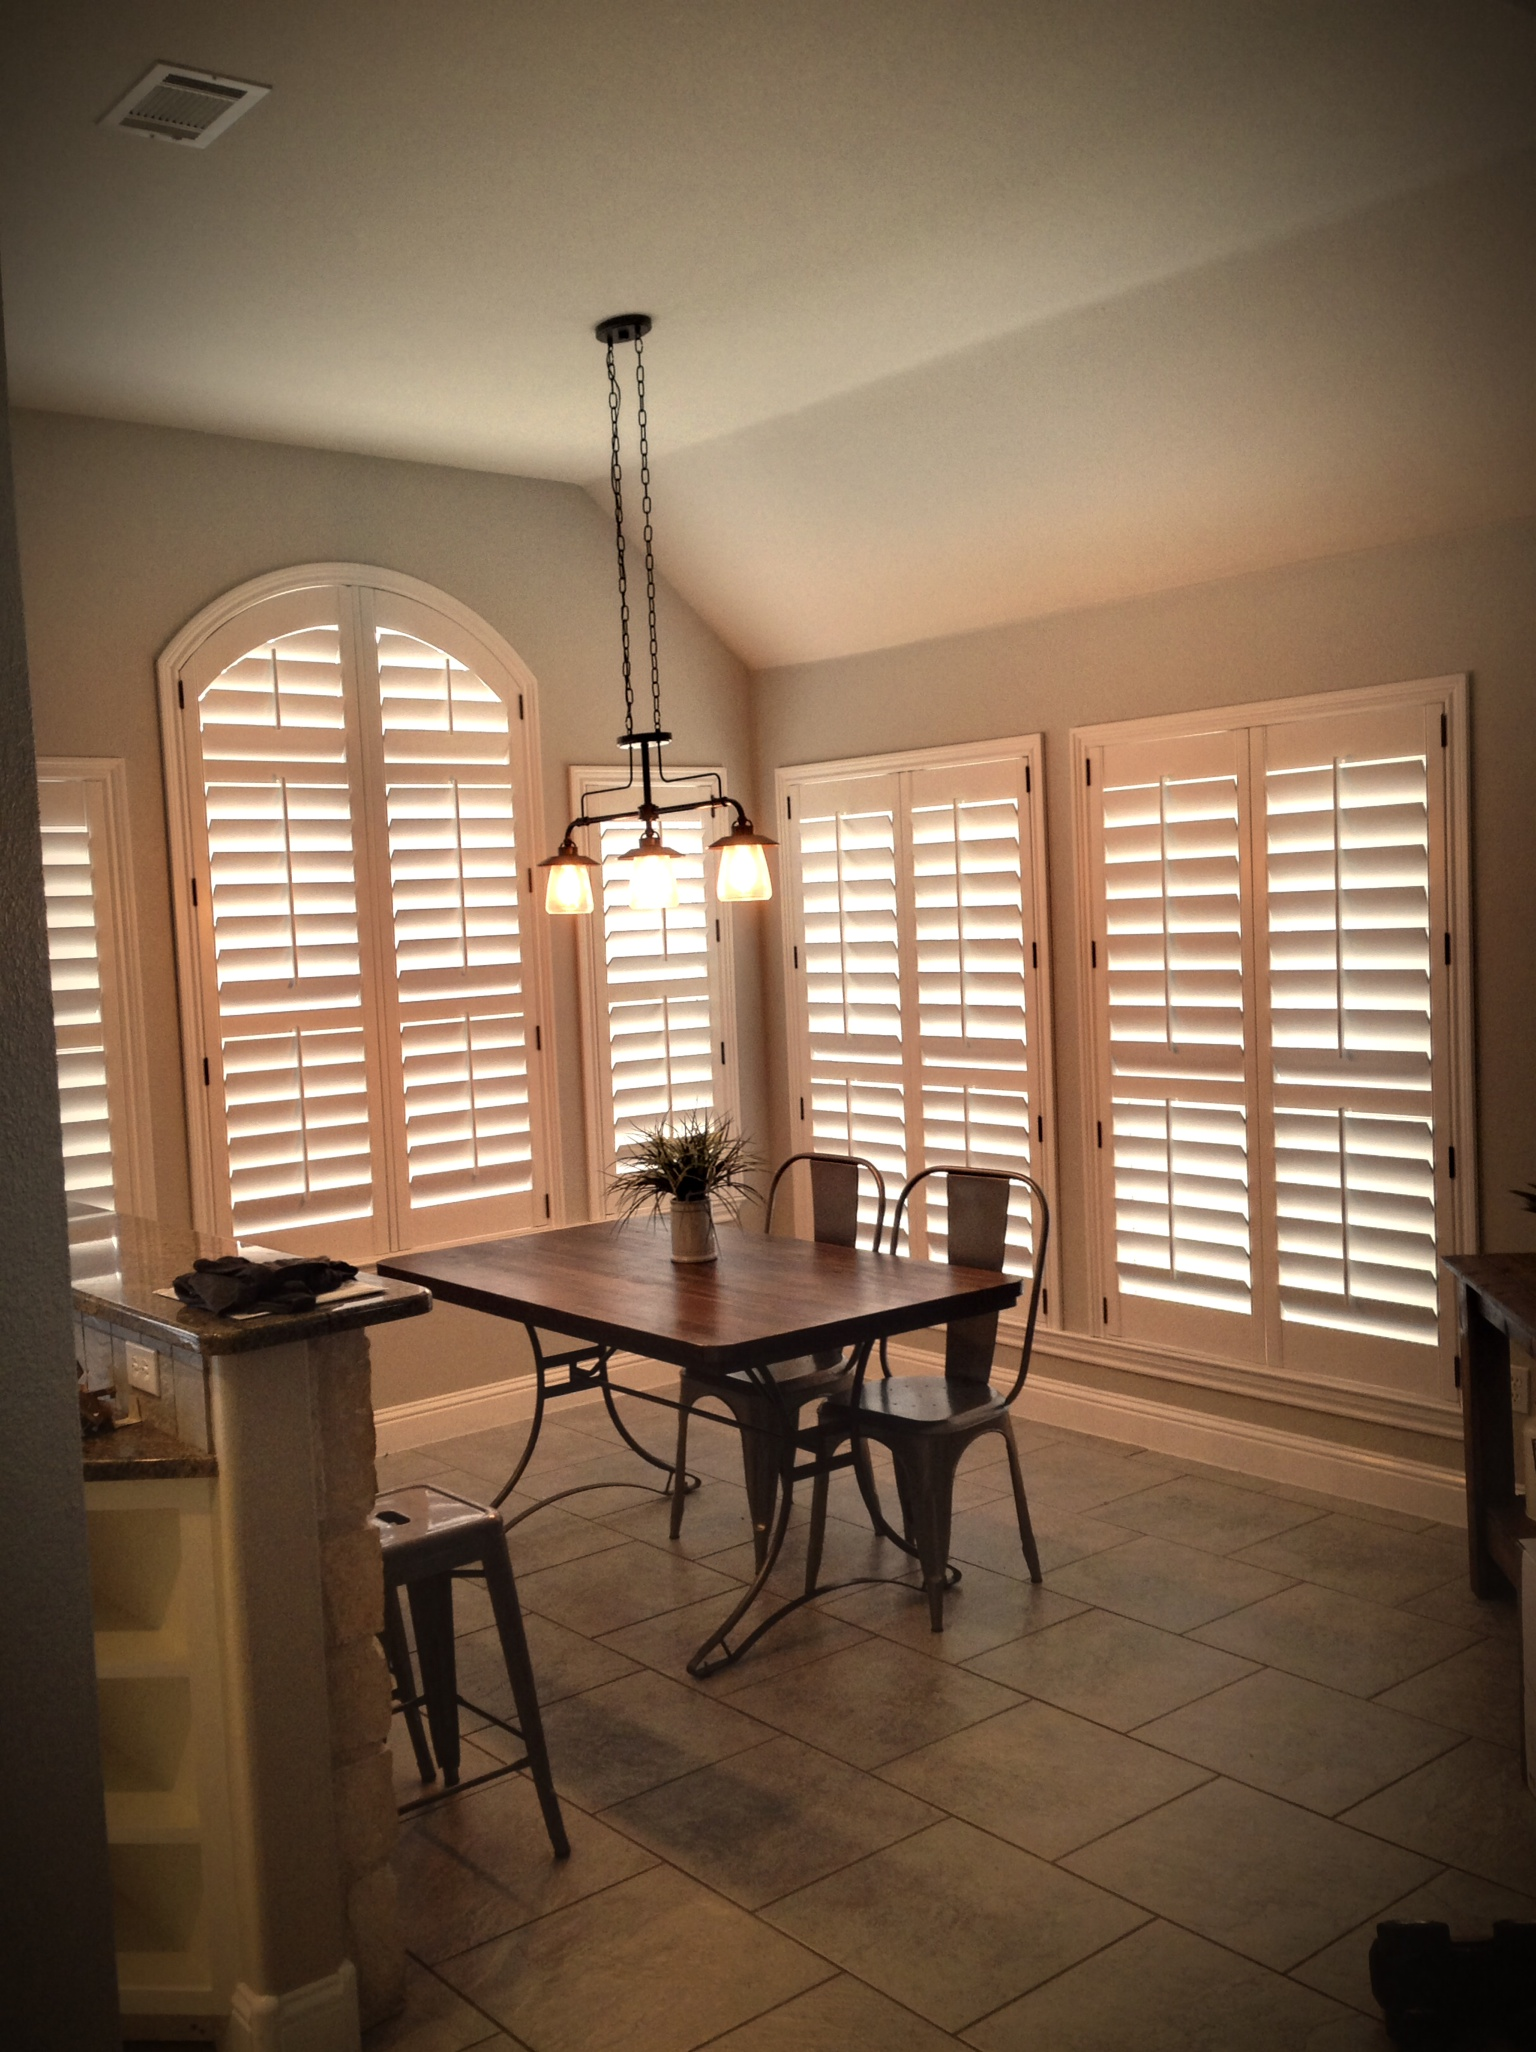 after - arched shutter